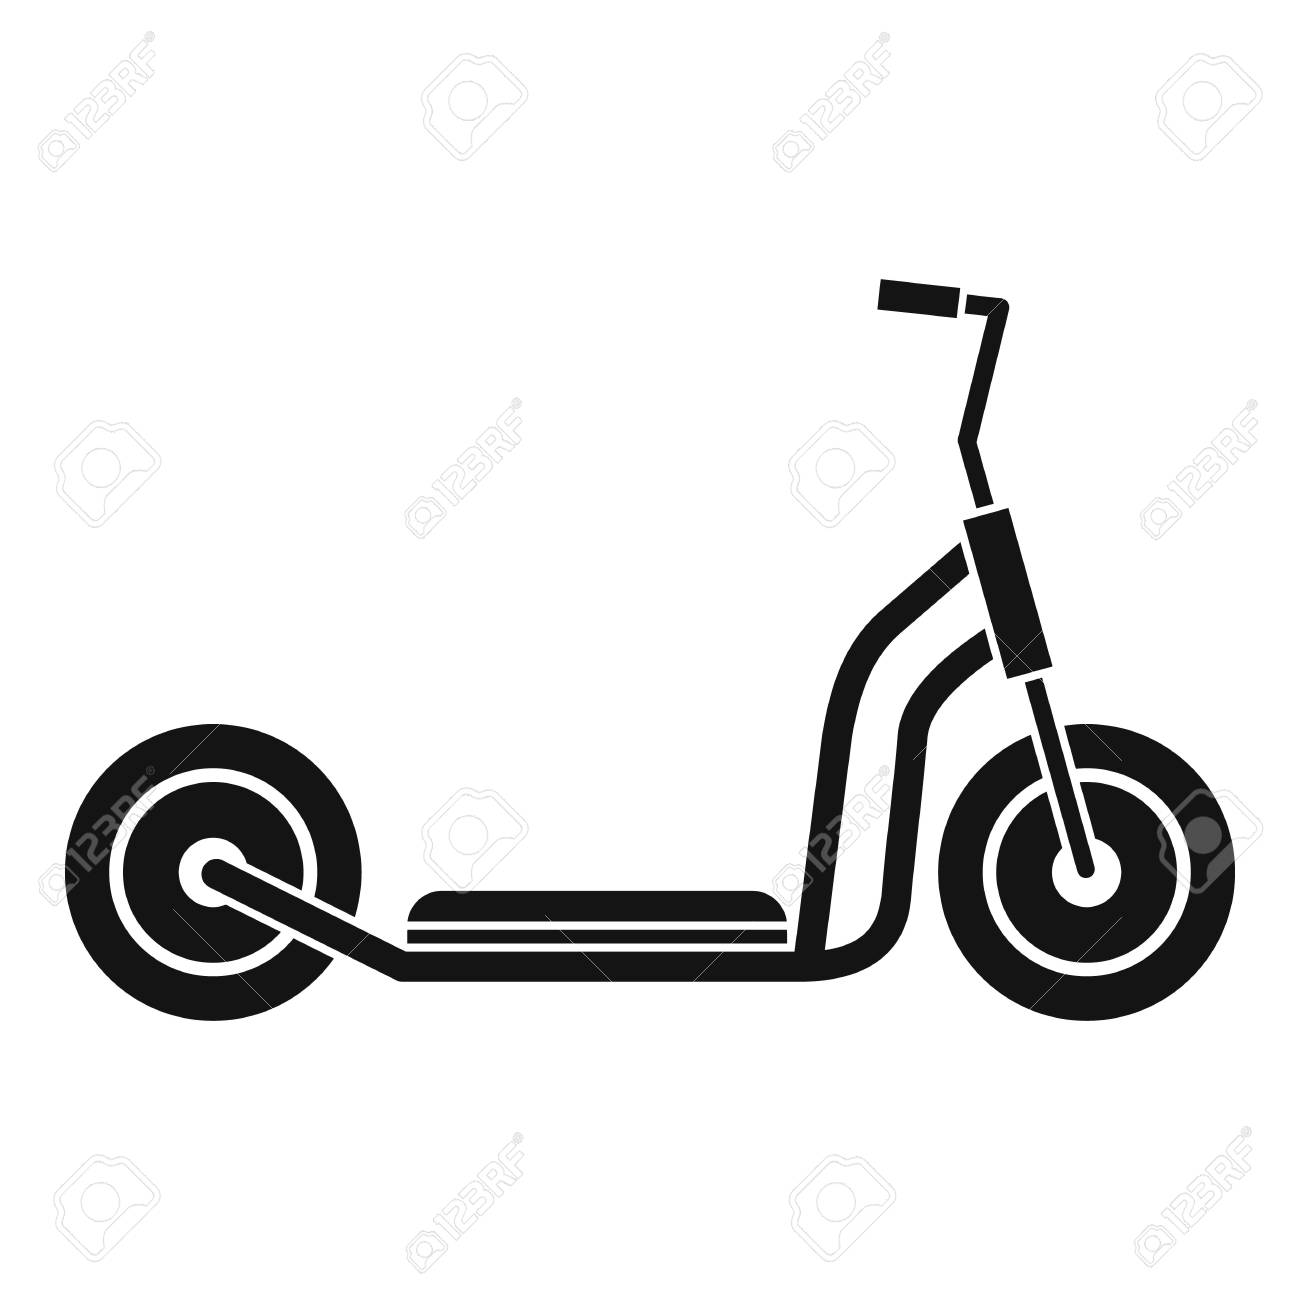 kick scooter icon simple illustration of kick scooter vector royalty free cliparts vectors and stock illustration image 64353561 kick scooter icon simple illustration of kick scooter vector